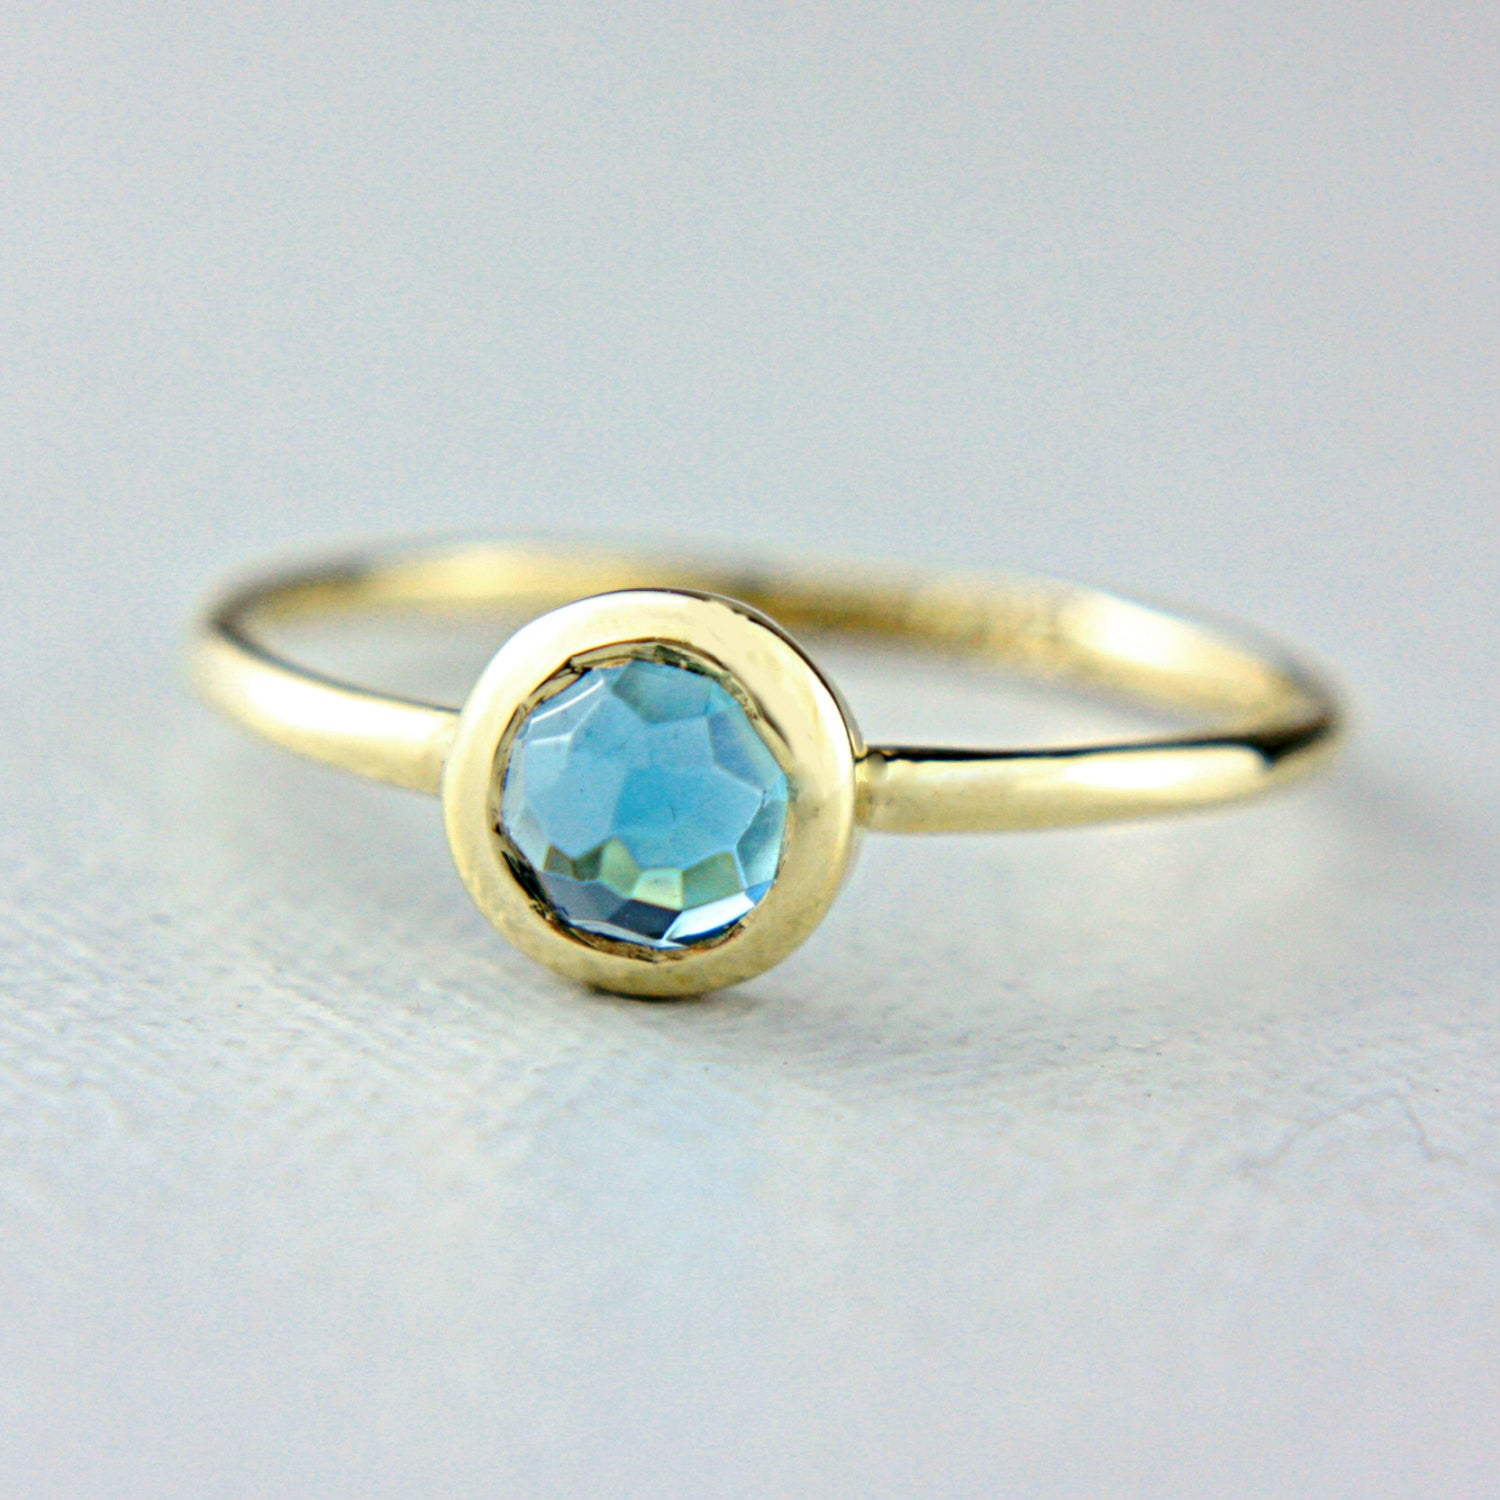 Blue Rose Cut Topaz 14k Rose Gold Ring - Manari Design